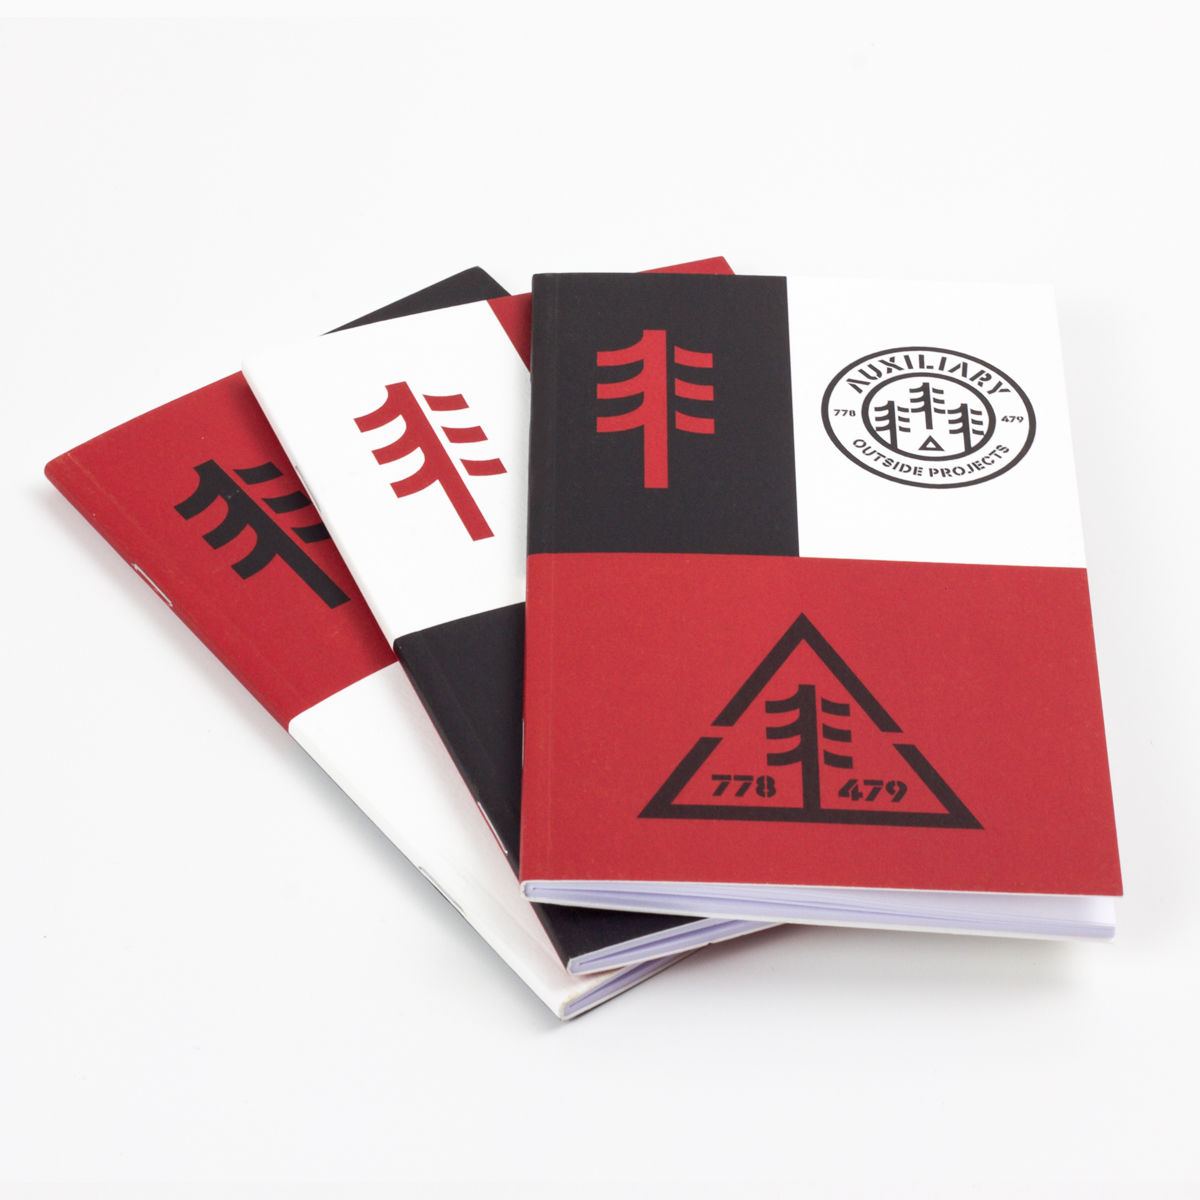 Auxiliary - Pocket Journal - product images  of